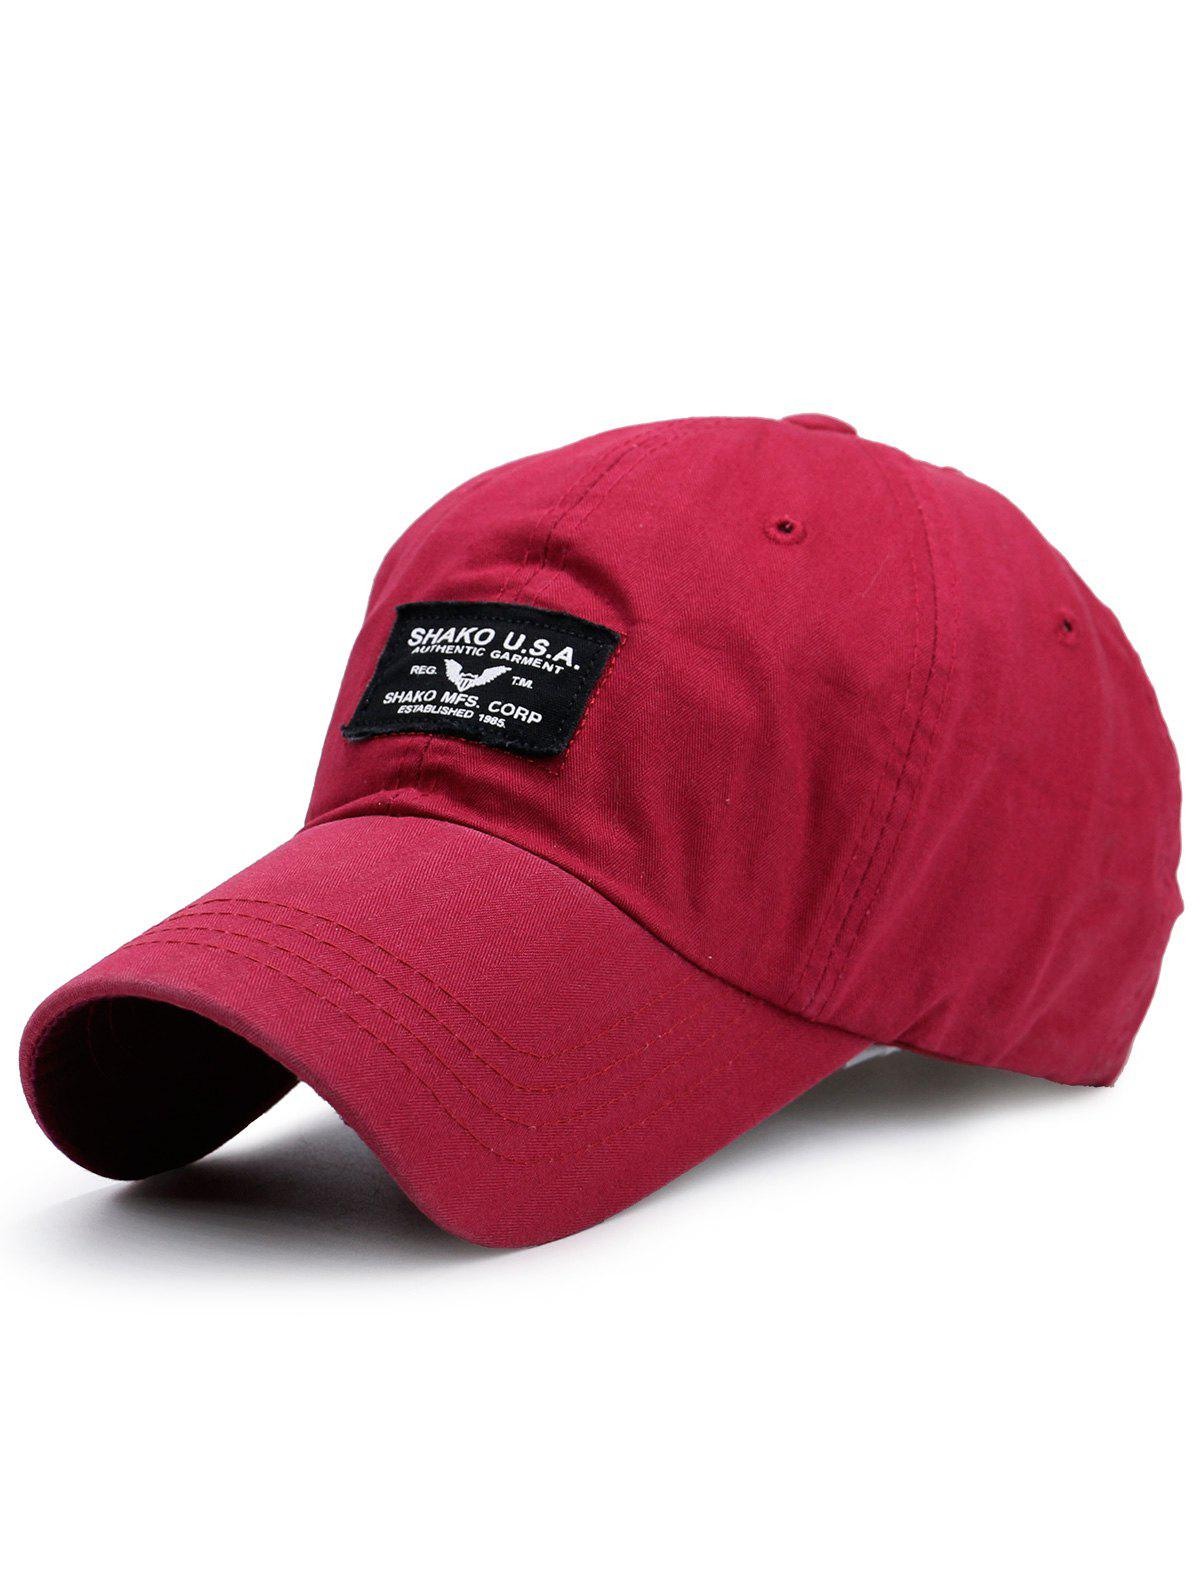 Lettres en plein air Patchwork Baseball Cap - Rouge Clair